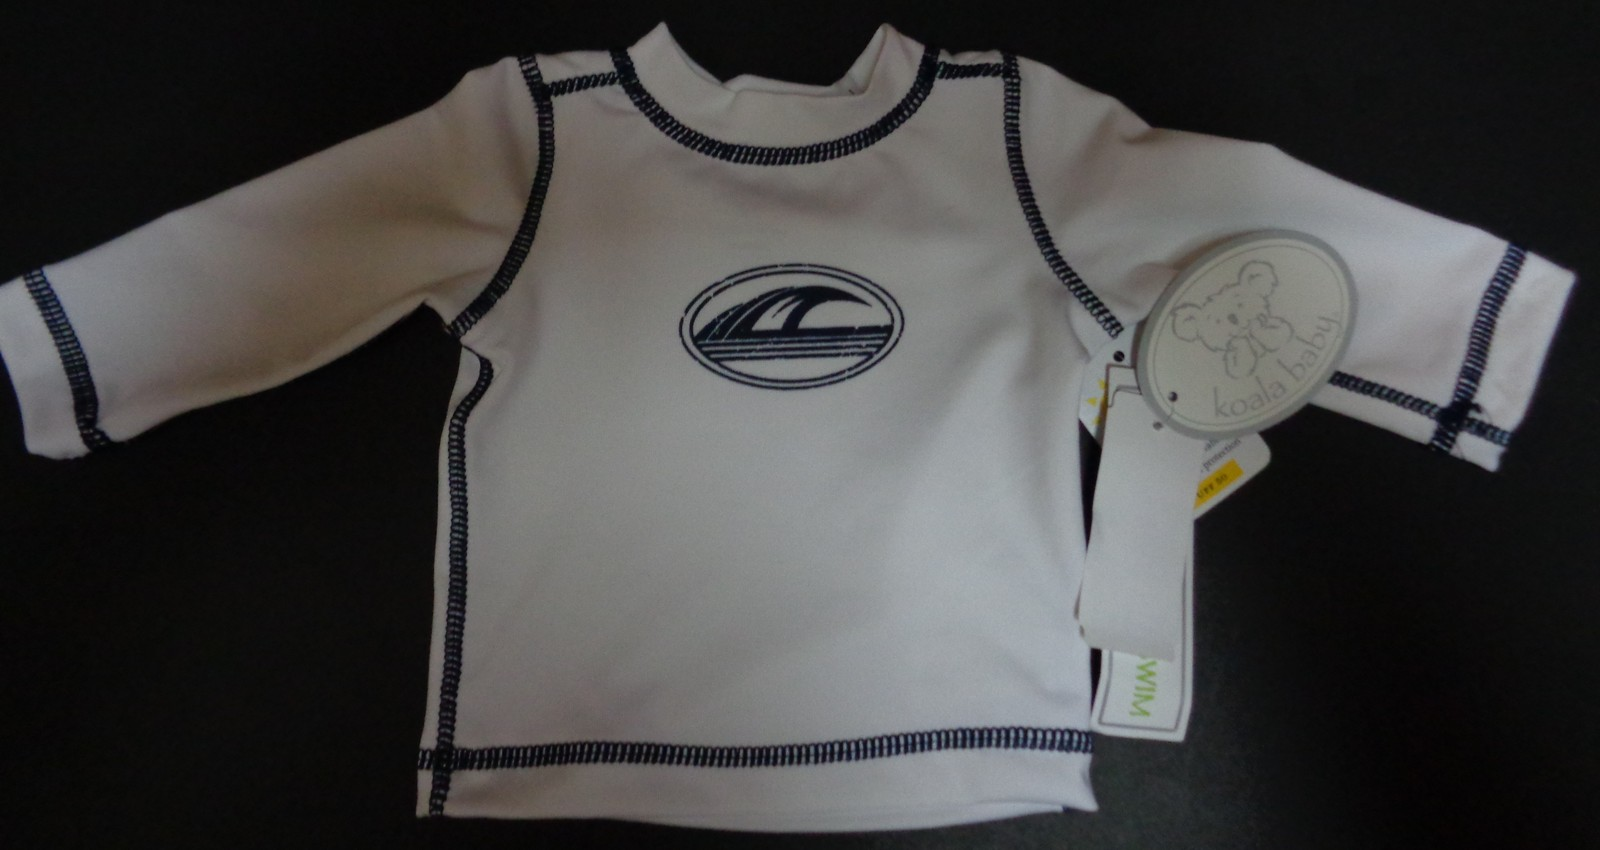 Koala Baby Boys Newborn Swim Shirt NWT White Long Sleeves UV Protection UPF 50